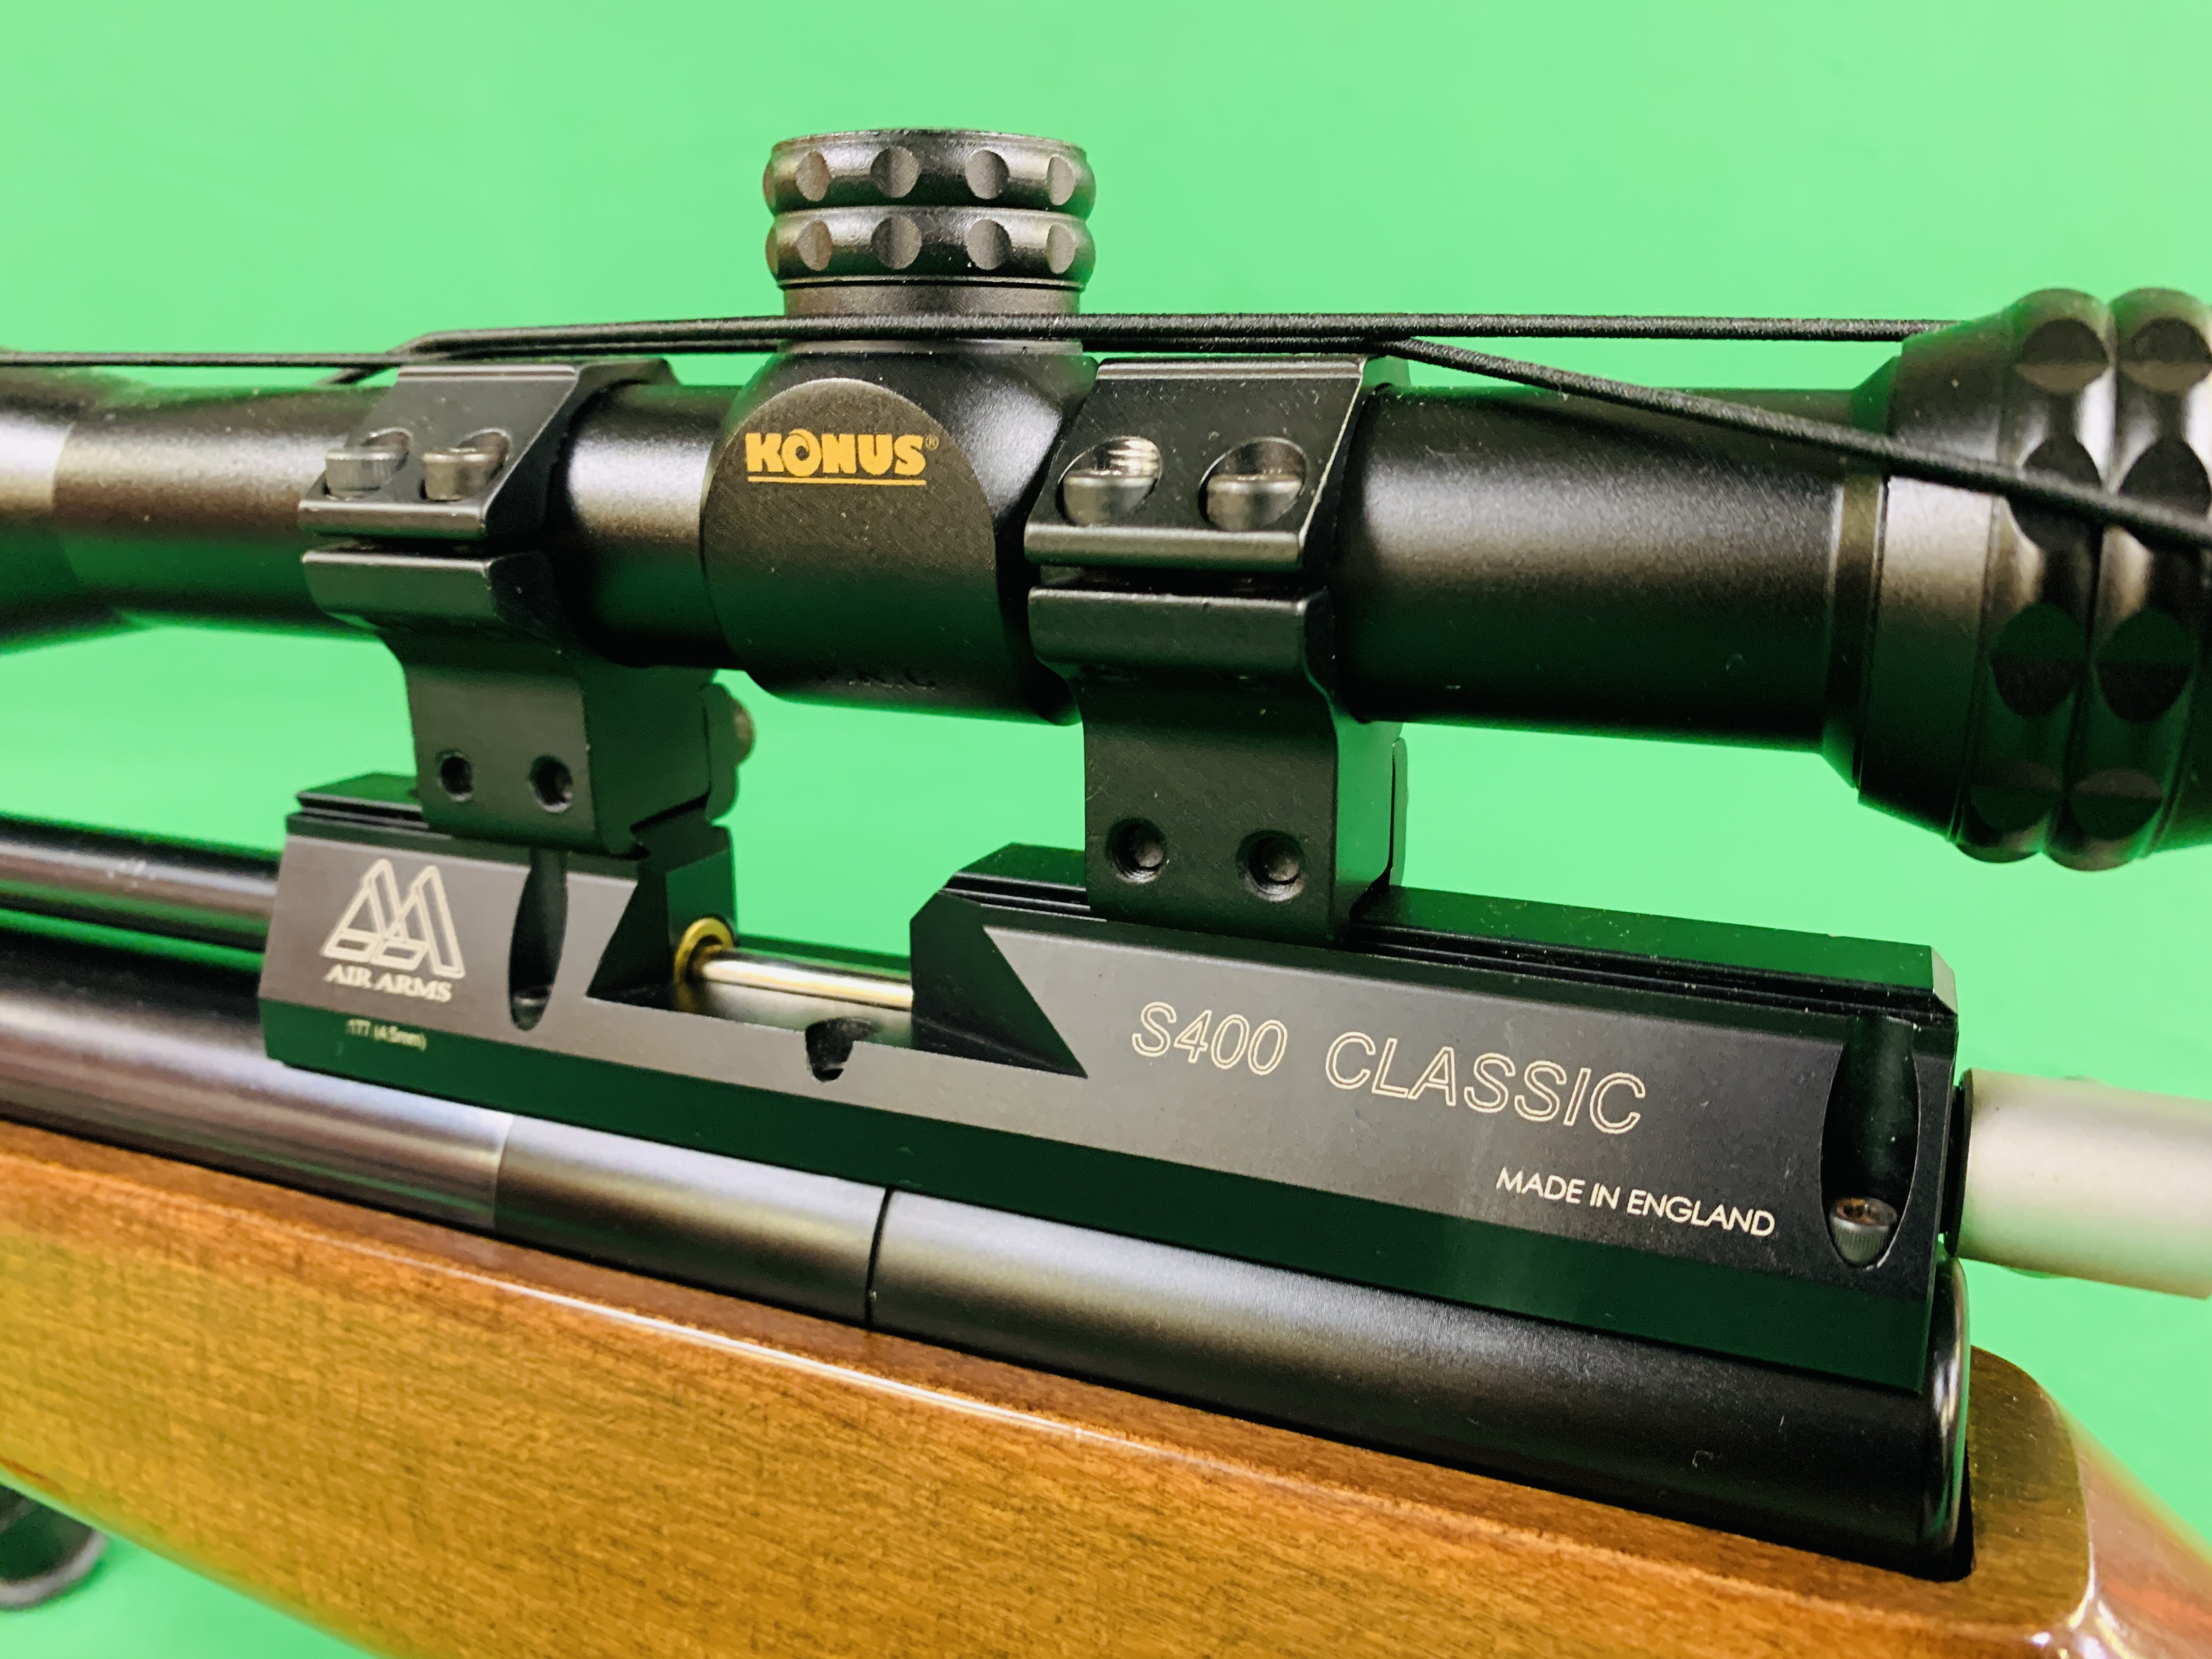 AIR ARMS S400 CLASSIC .177 BOLT ACTION PCP AIR RIFLE FITTED WITH BONUS 6. - Image 2 of 17